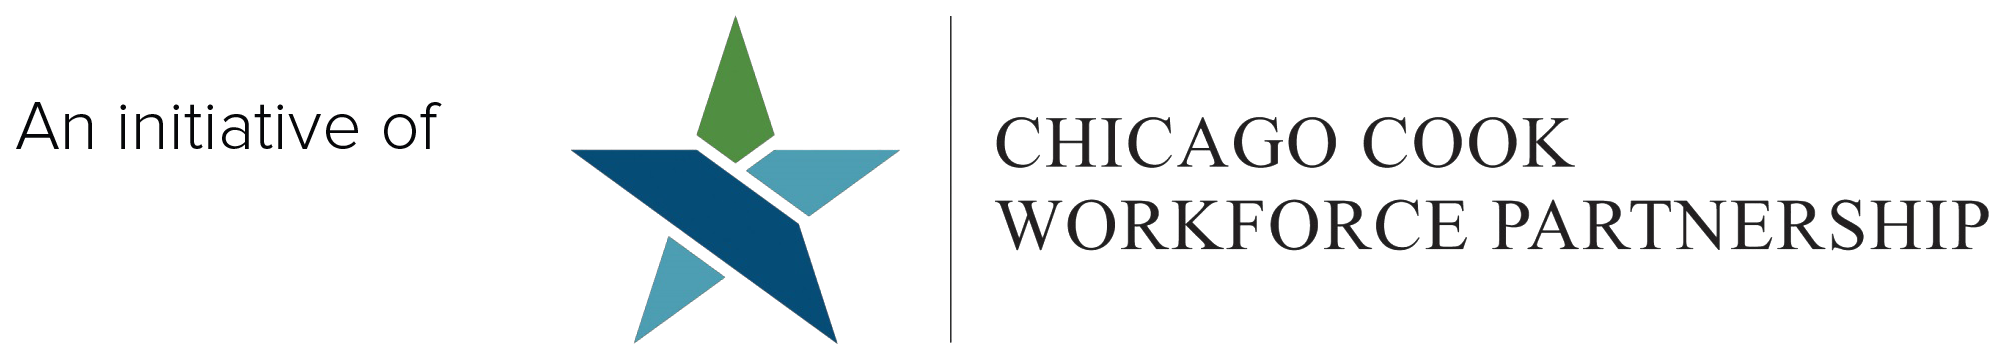 chicago_codes_logo